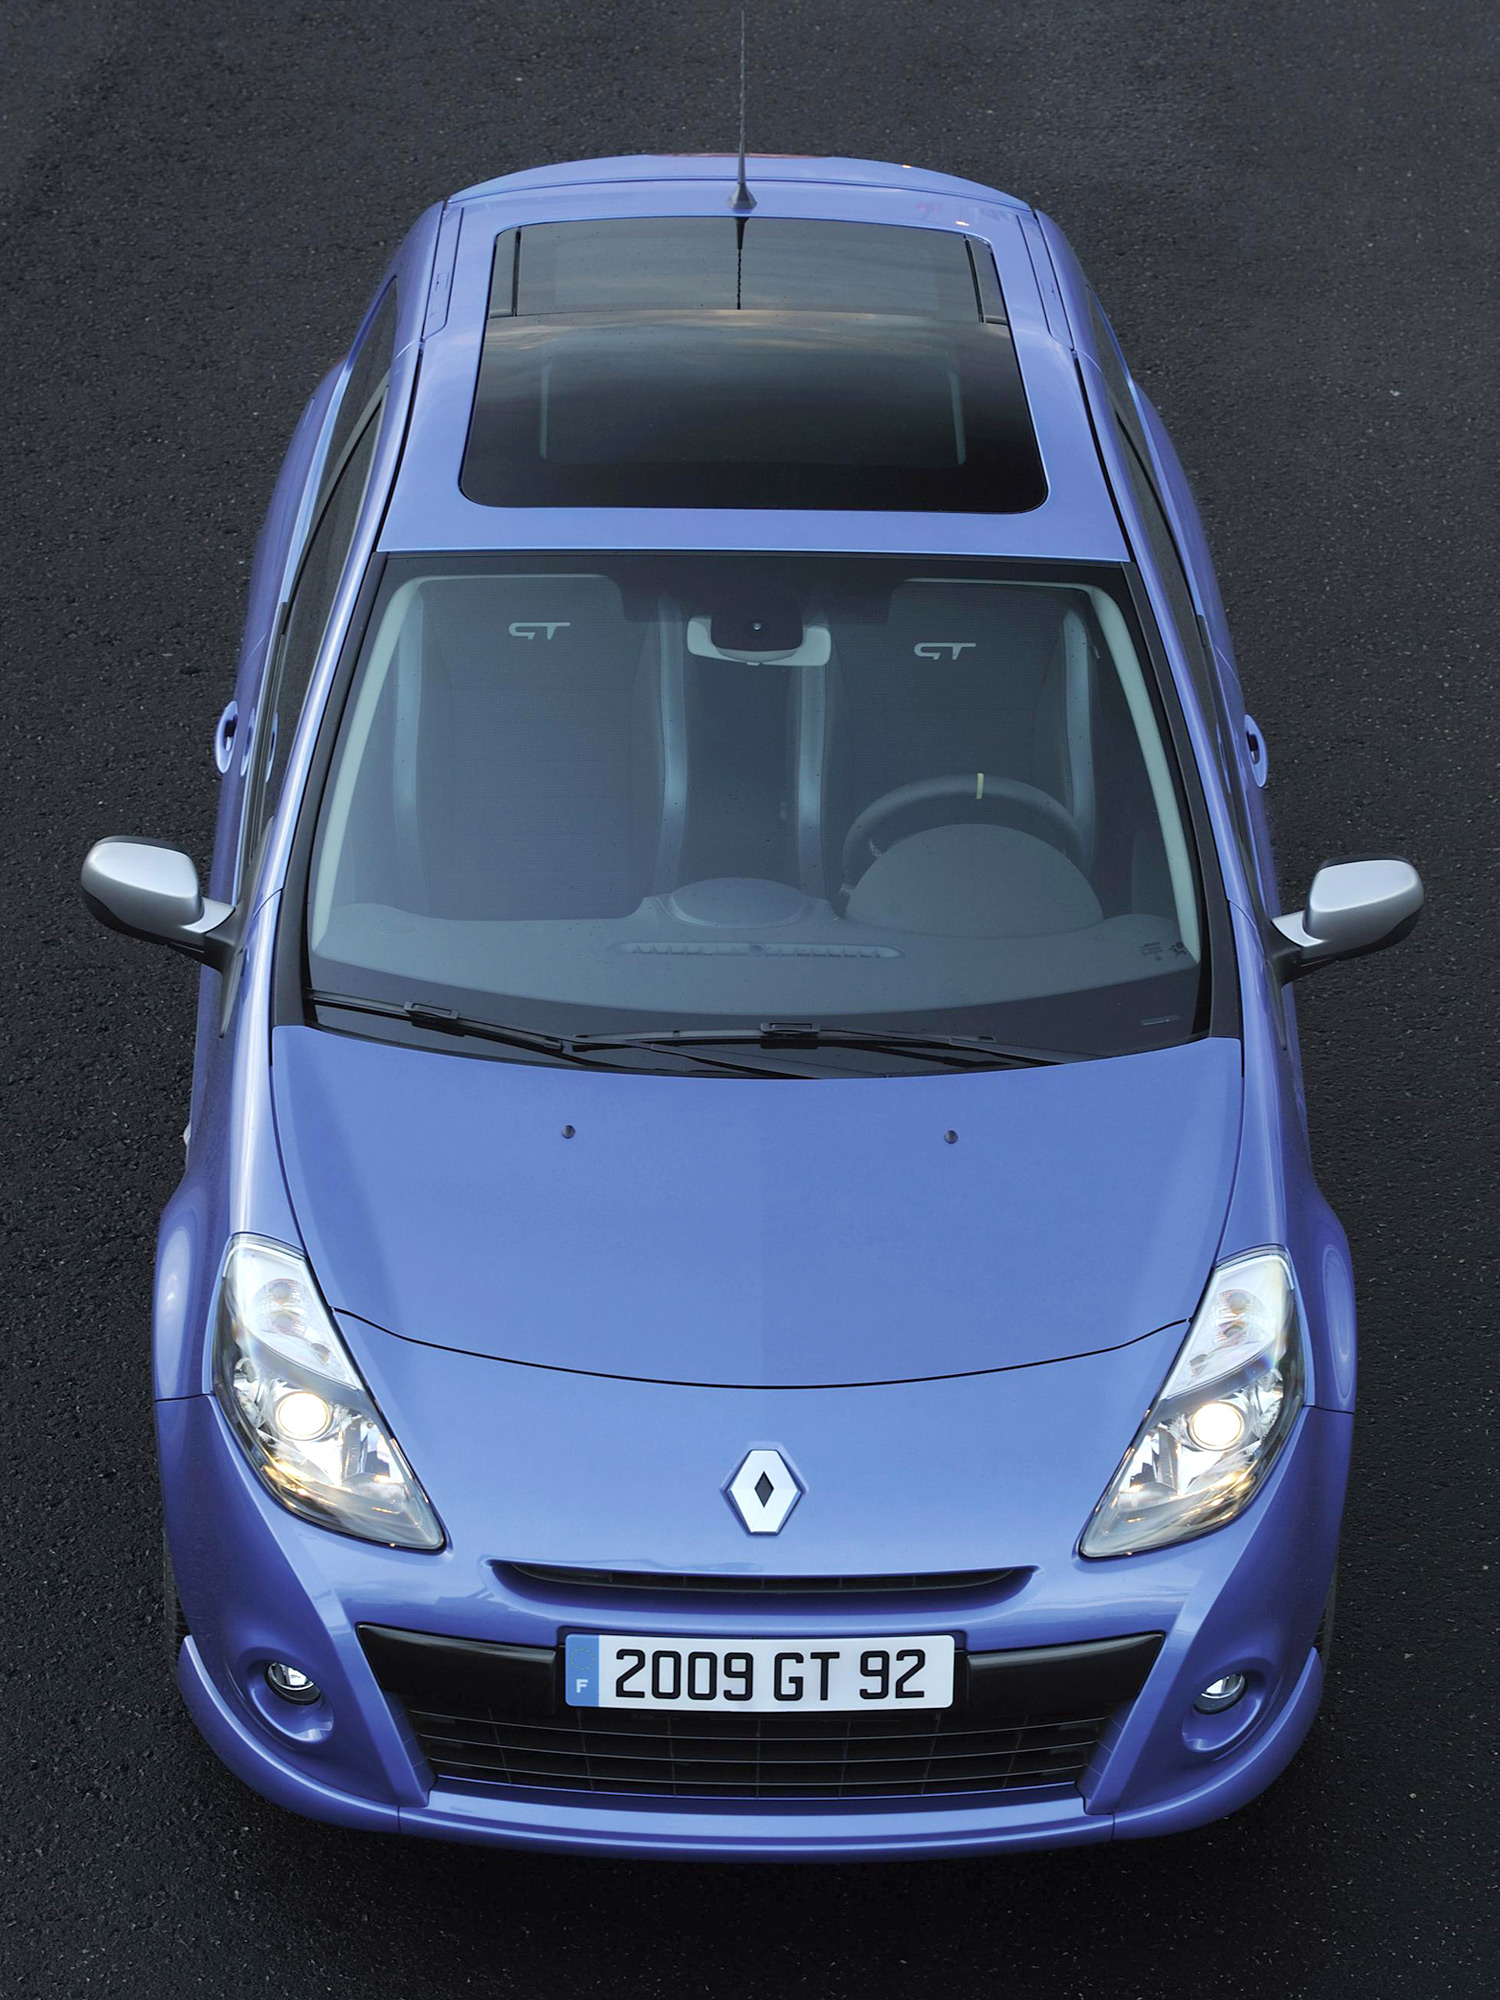 renault clio iii enters phase 2. Black Bedroom Furniture Sets. Home Design Ideas